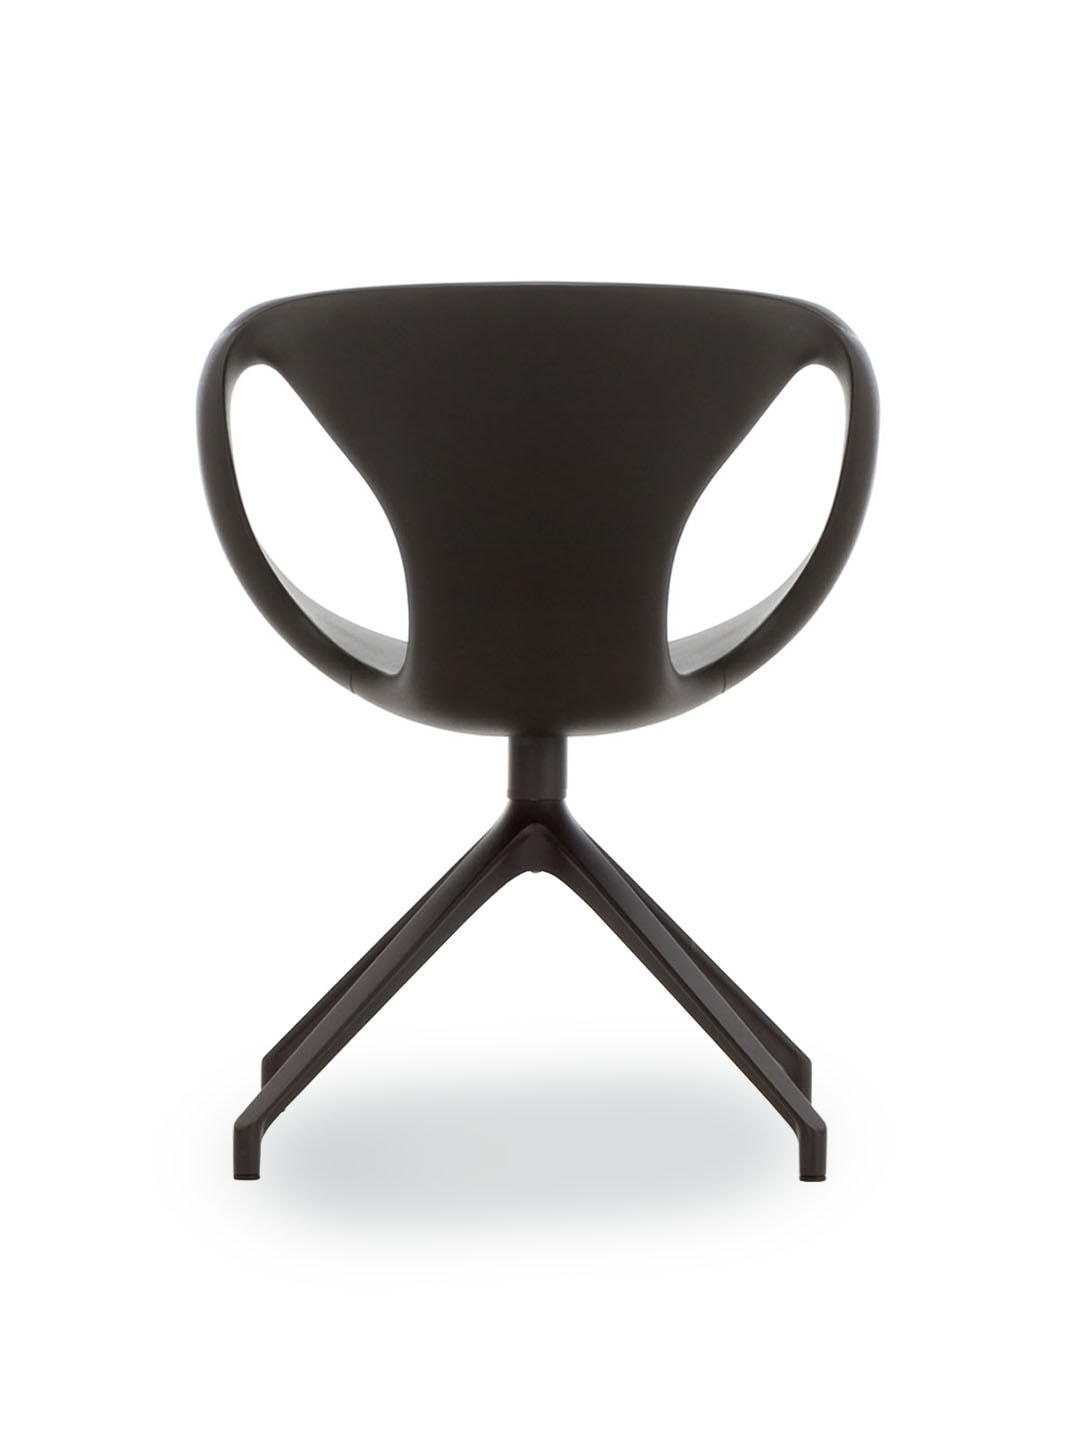 Tonon up chair, designer stuhl, italien, 907.81, mbzwo, step 907.81, tonon 907, lounge stuhl